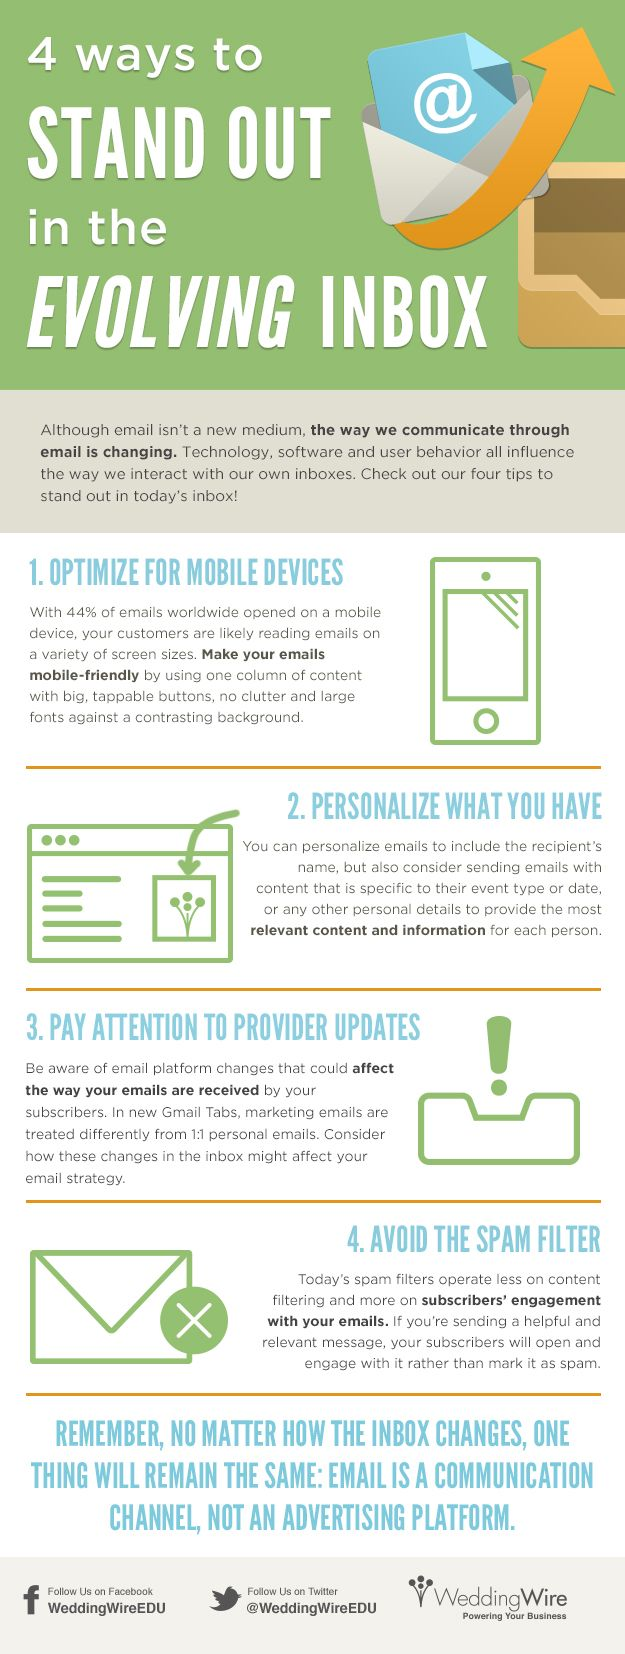 4 Ways to Stand Out in the Evolving Inbox [#Infographic] - WeddingWire EDU Blog